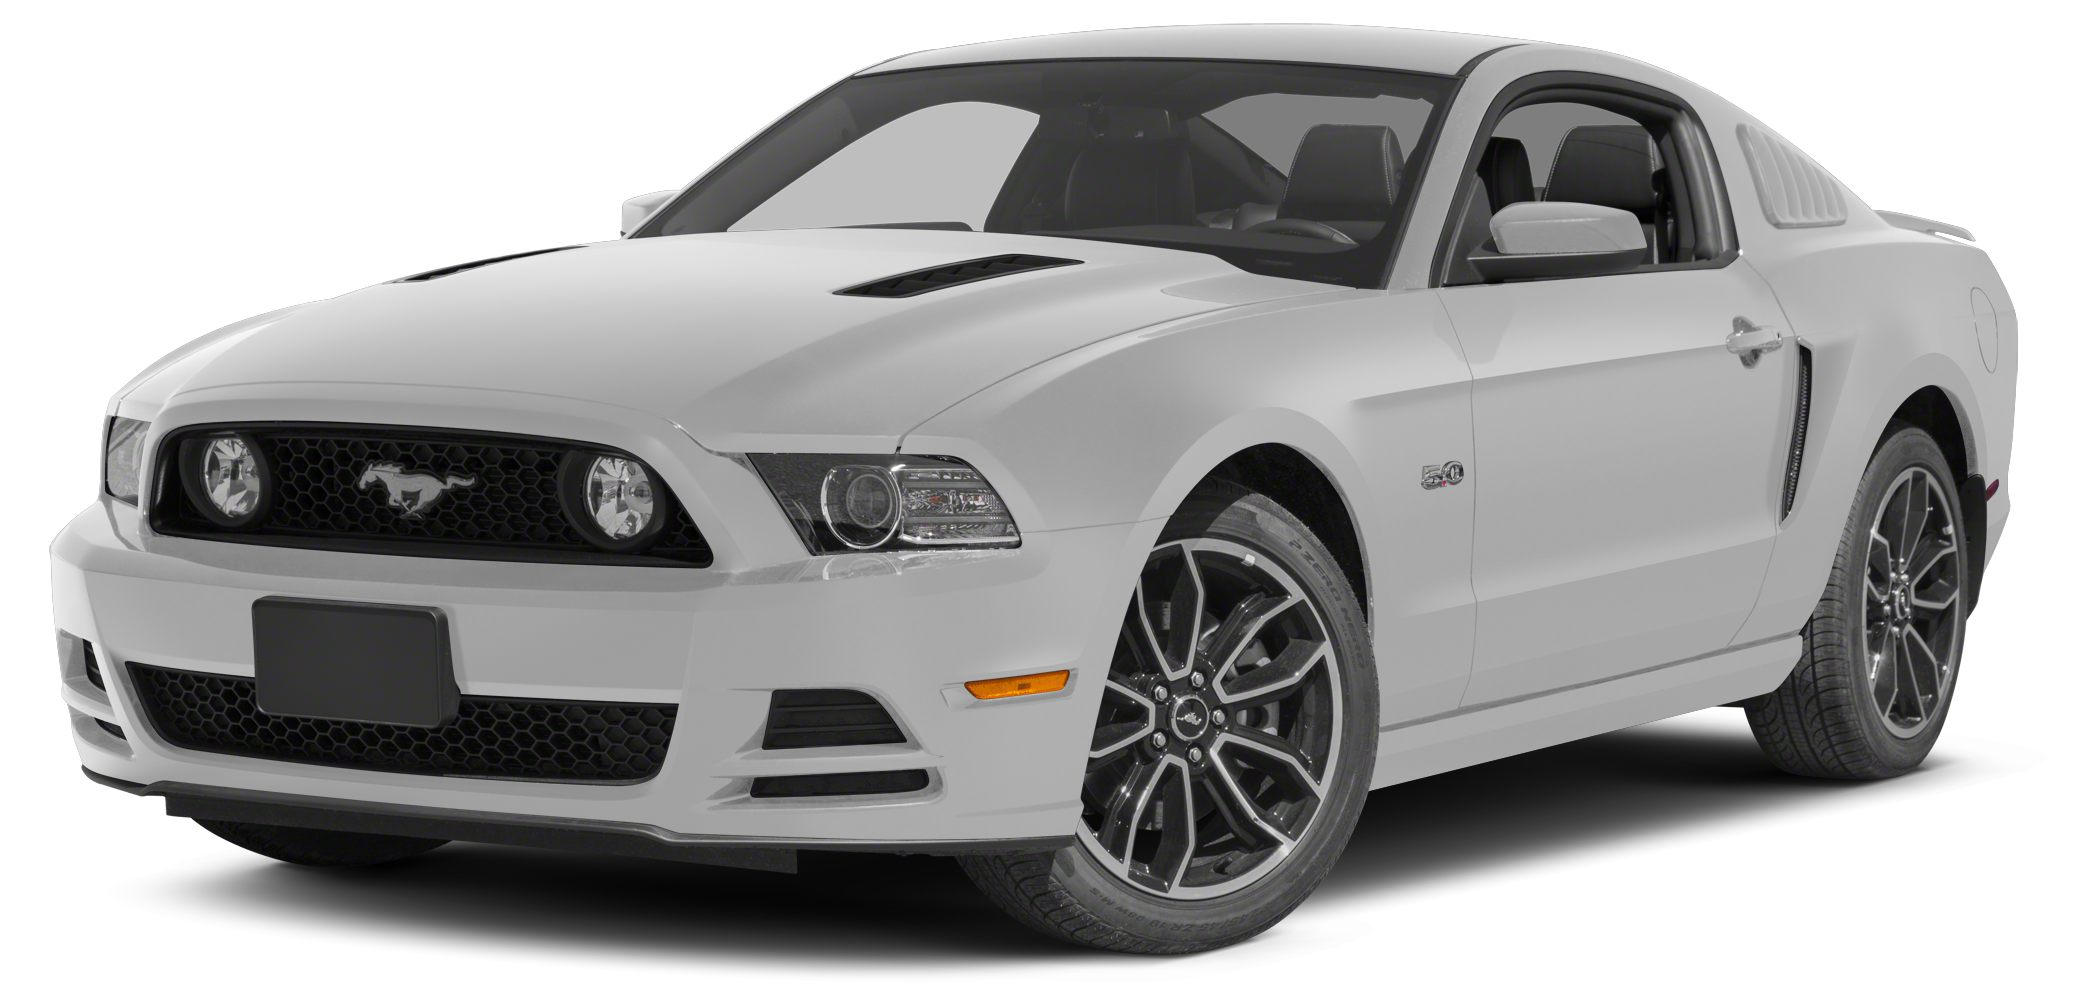 2013 Ford Mustang  DISCLAIMER We are excited to offer this vehicle to you but it is currently in